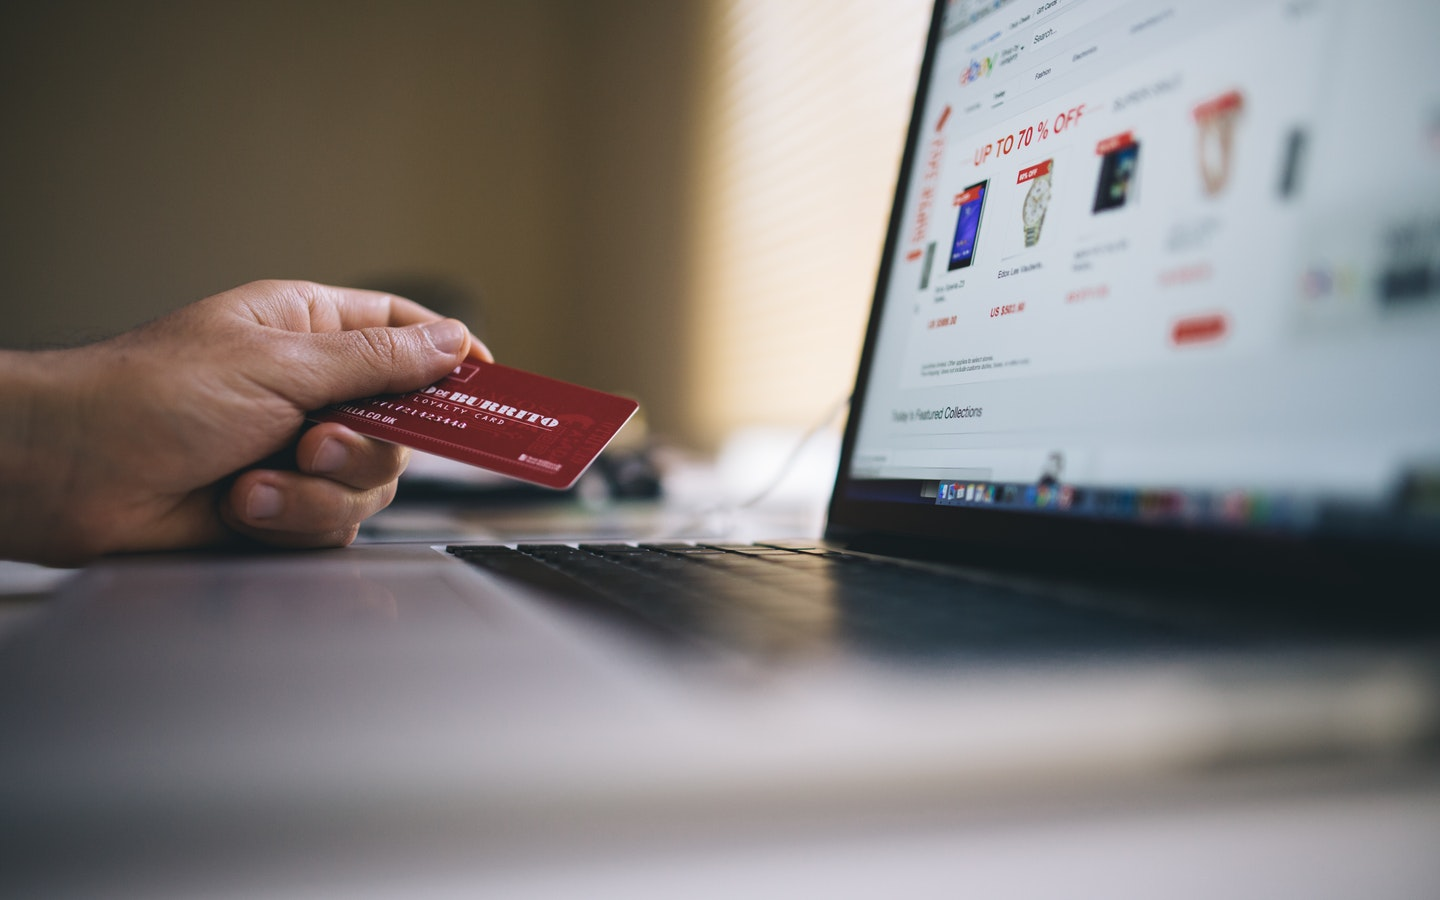 a hand is holding a credit card in front of a computer